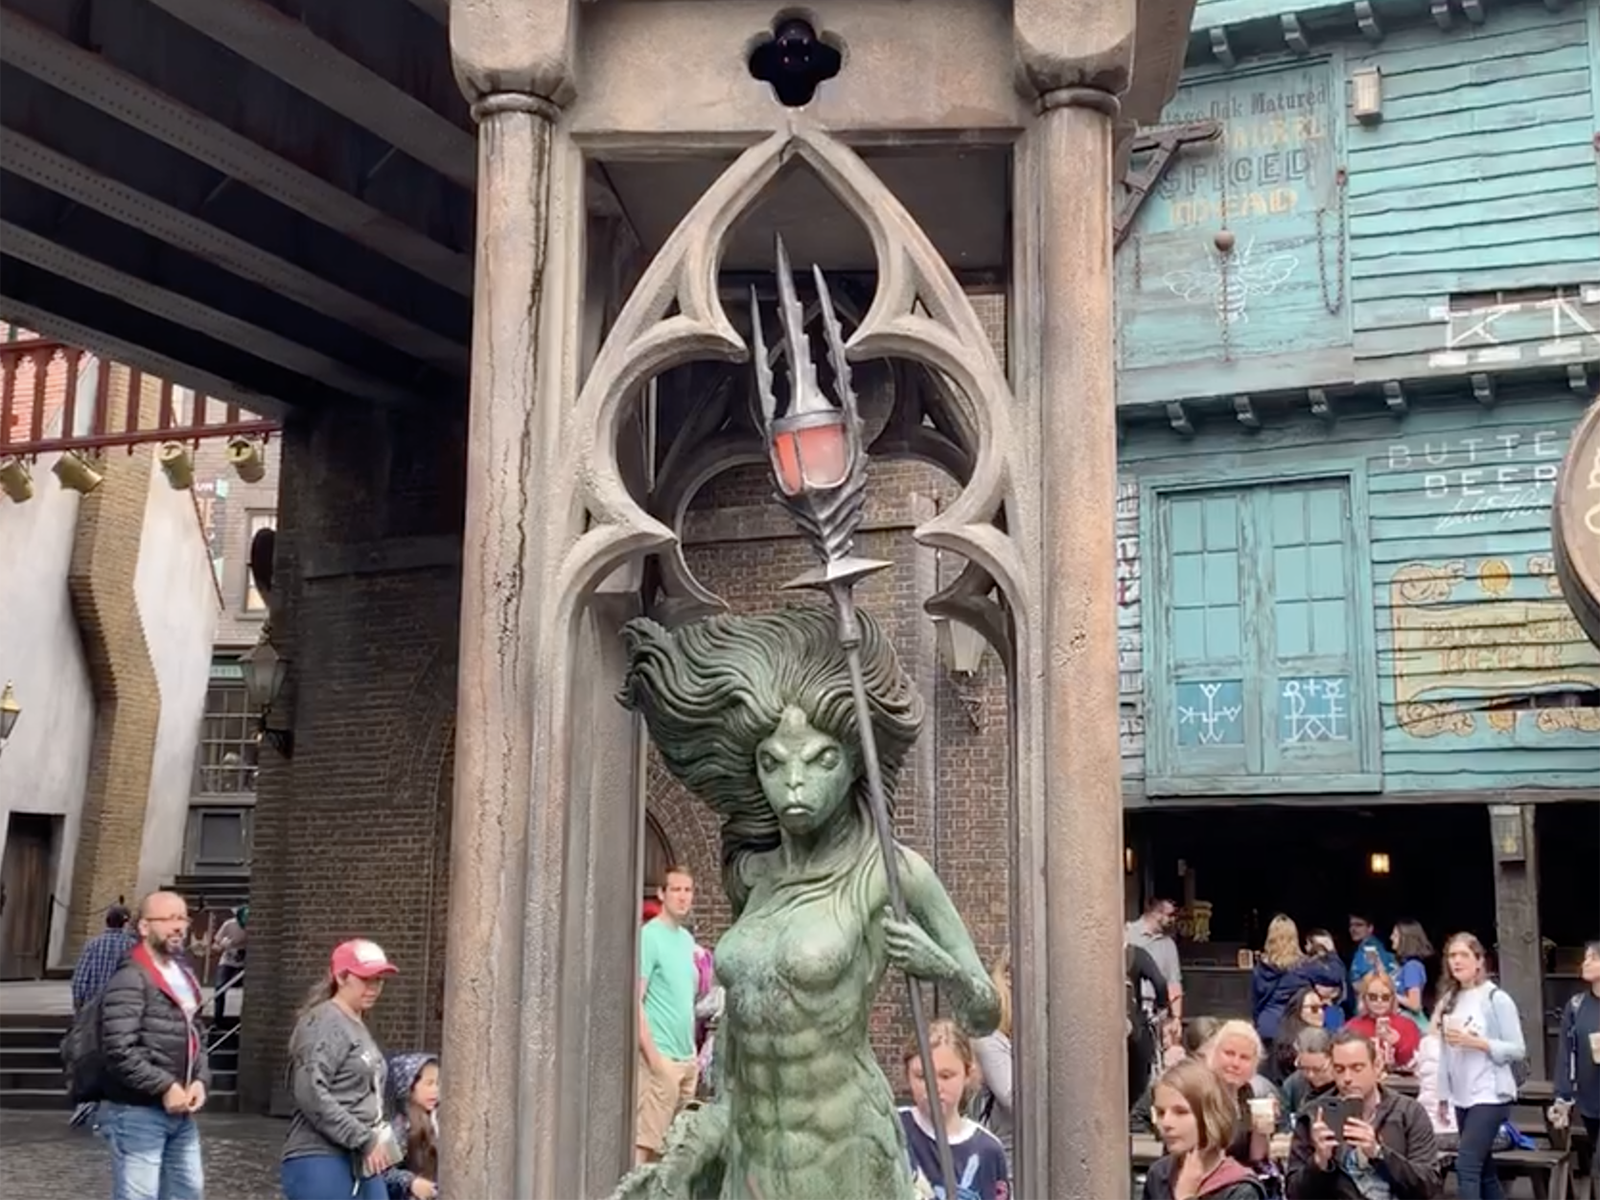 Harry-Potter-statue.png?mtime=20190423084823#asset:105594